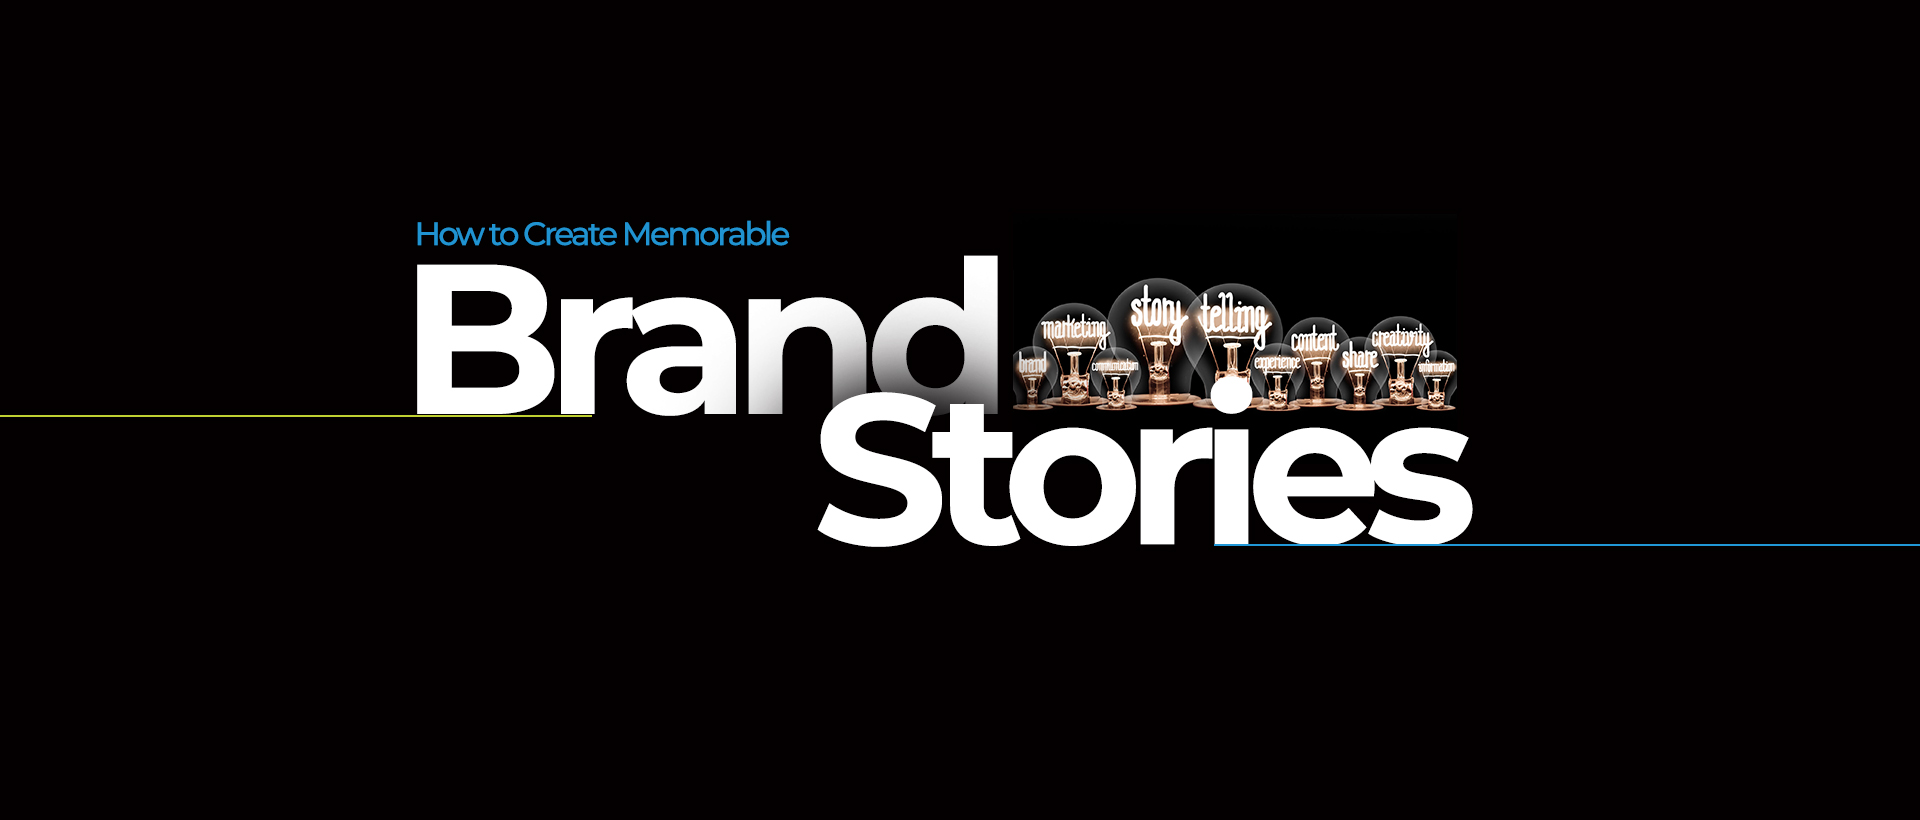 How to Create Memorable Brand Stories